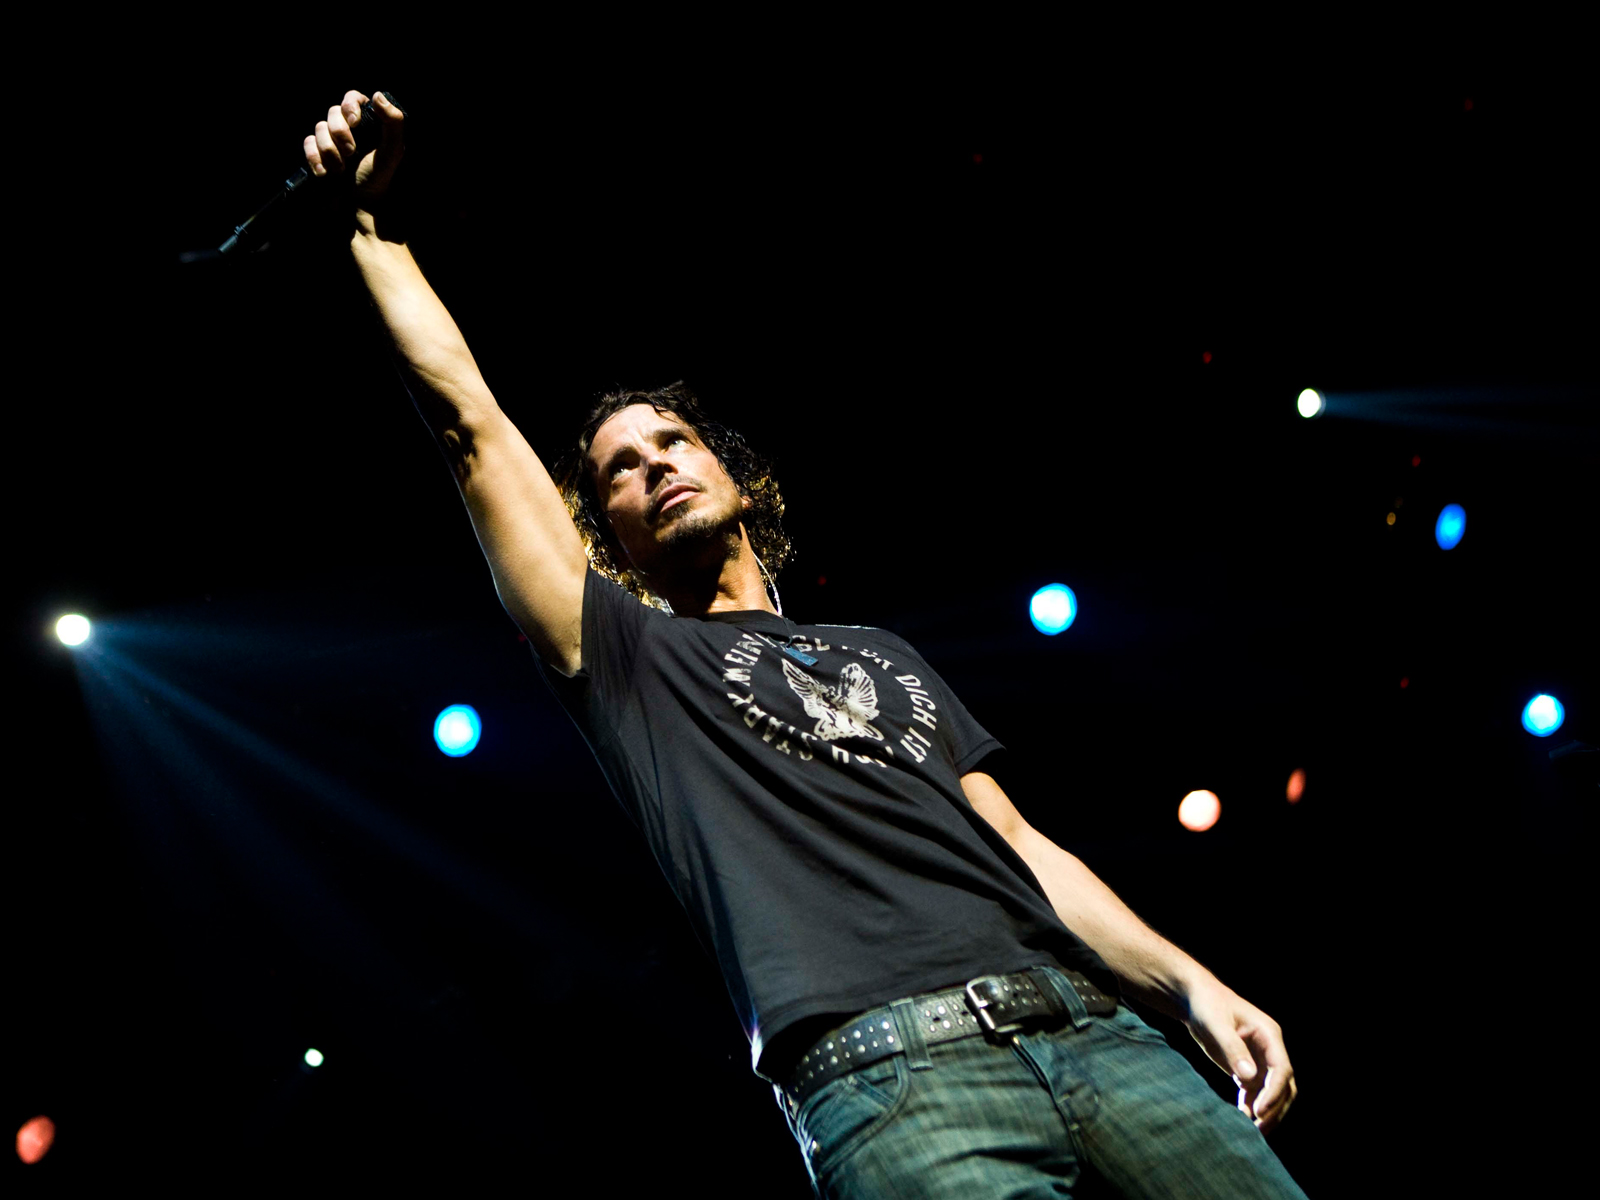 chris cornell wallpaper pictures 55653